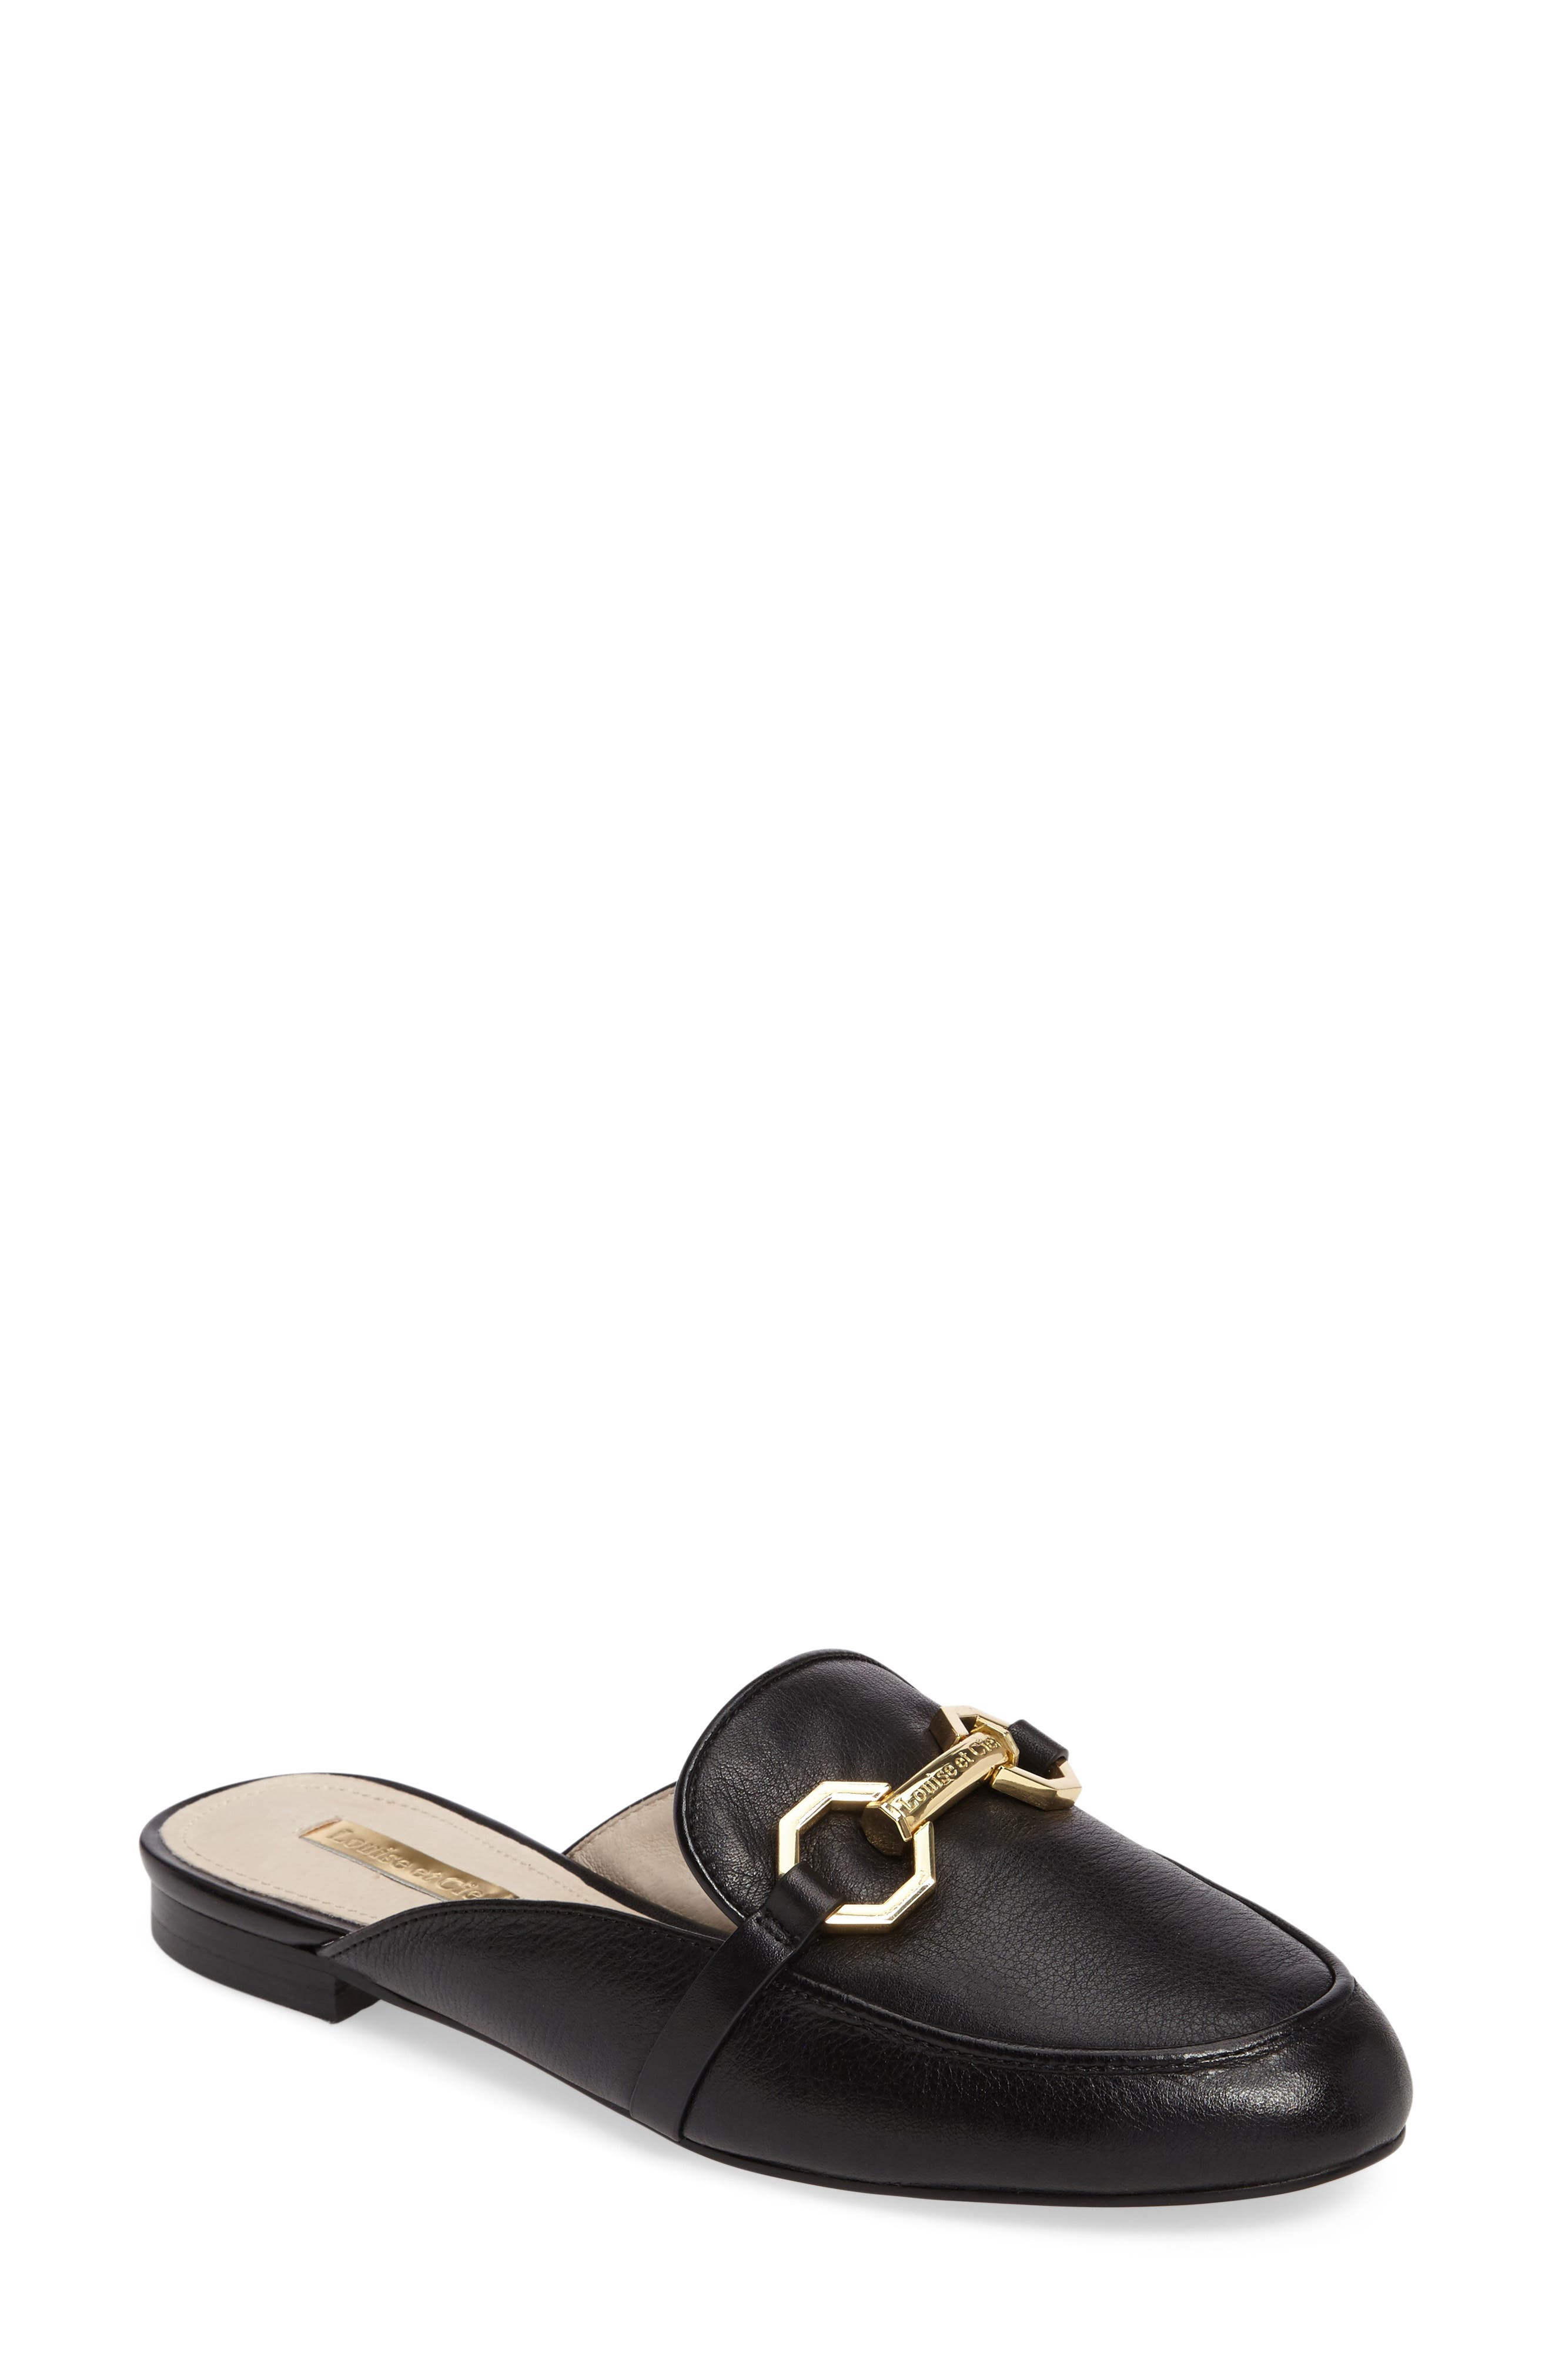 Alternate Image 1 Selected - Louise et Cie Finay Loafer Mule (Women)